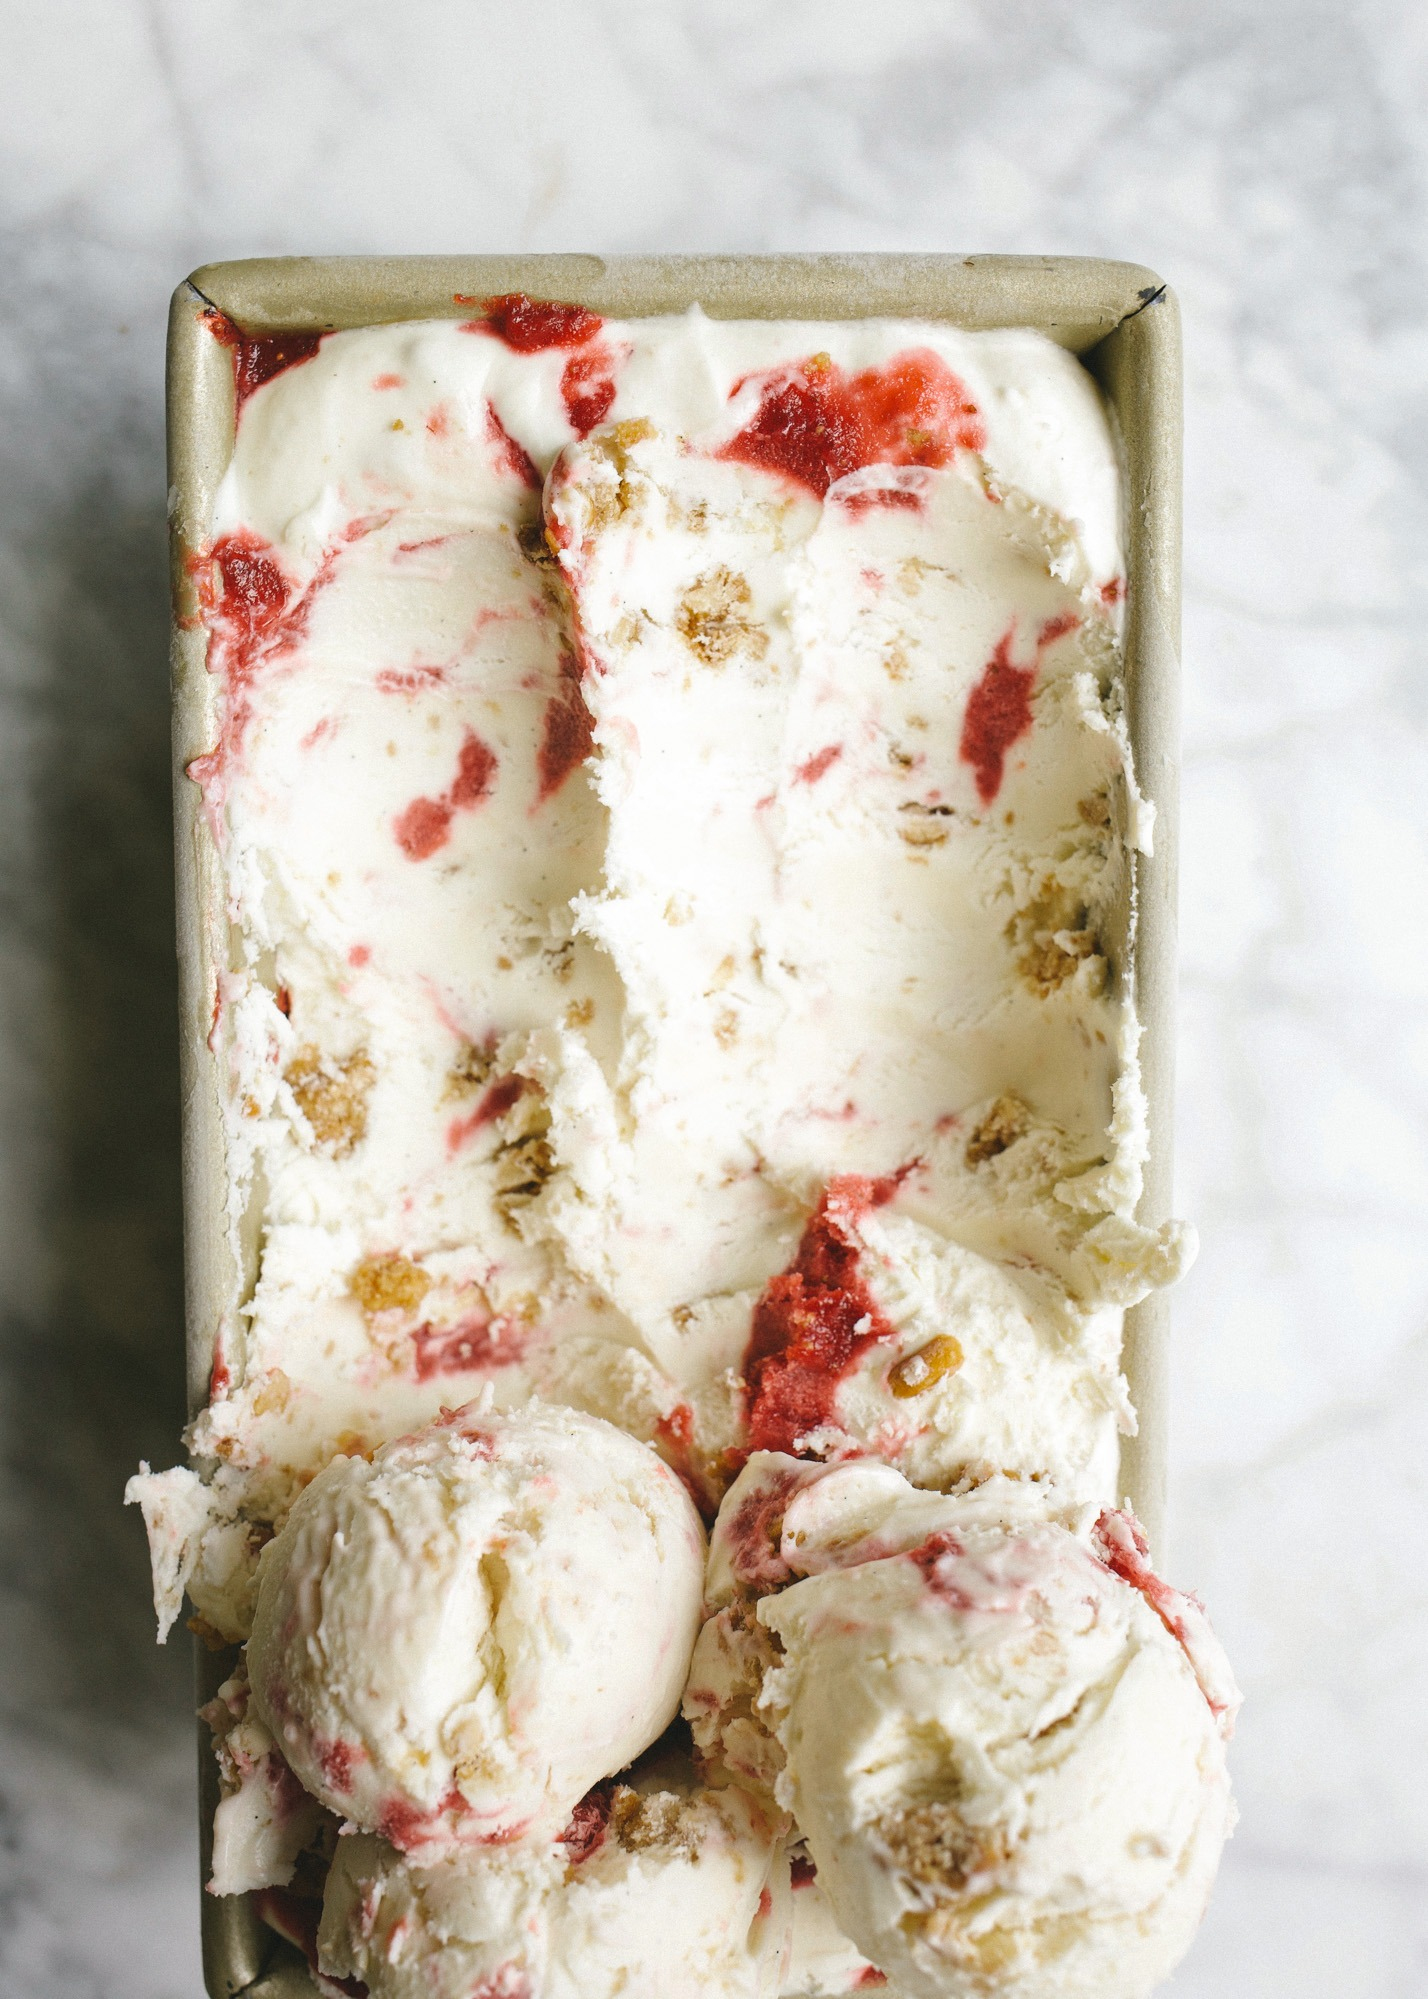 No-Churn Strawberry Pretzel Pie Ice Cream and A Father's Day Gift Guide! Learn how simple it is to make a no-churn ice cream that tastes like the classic strawberry pretzel pie casserole dessert! A cream cheese ice cream is swirled with a stovetop strawberry sauce and crumbled bits of pretzel crunch. The end result is a deliciously balanced and textured dessert that even non-ice cream lovers will love! Also, shop for all the dads in your life with this no-frills gift guide!